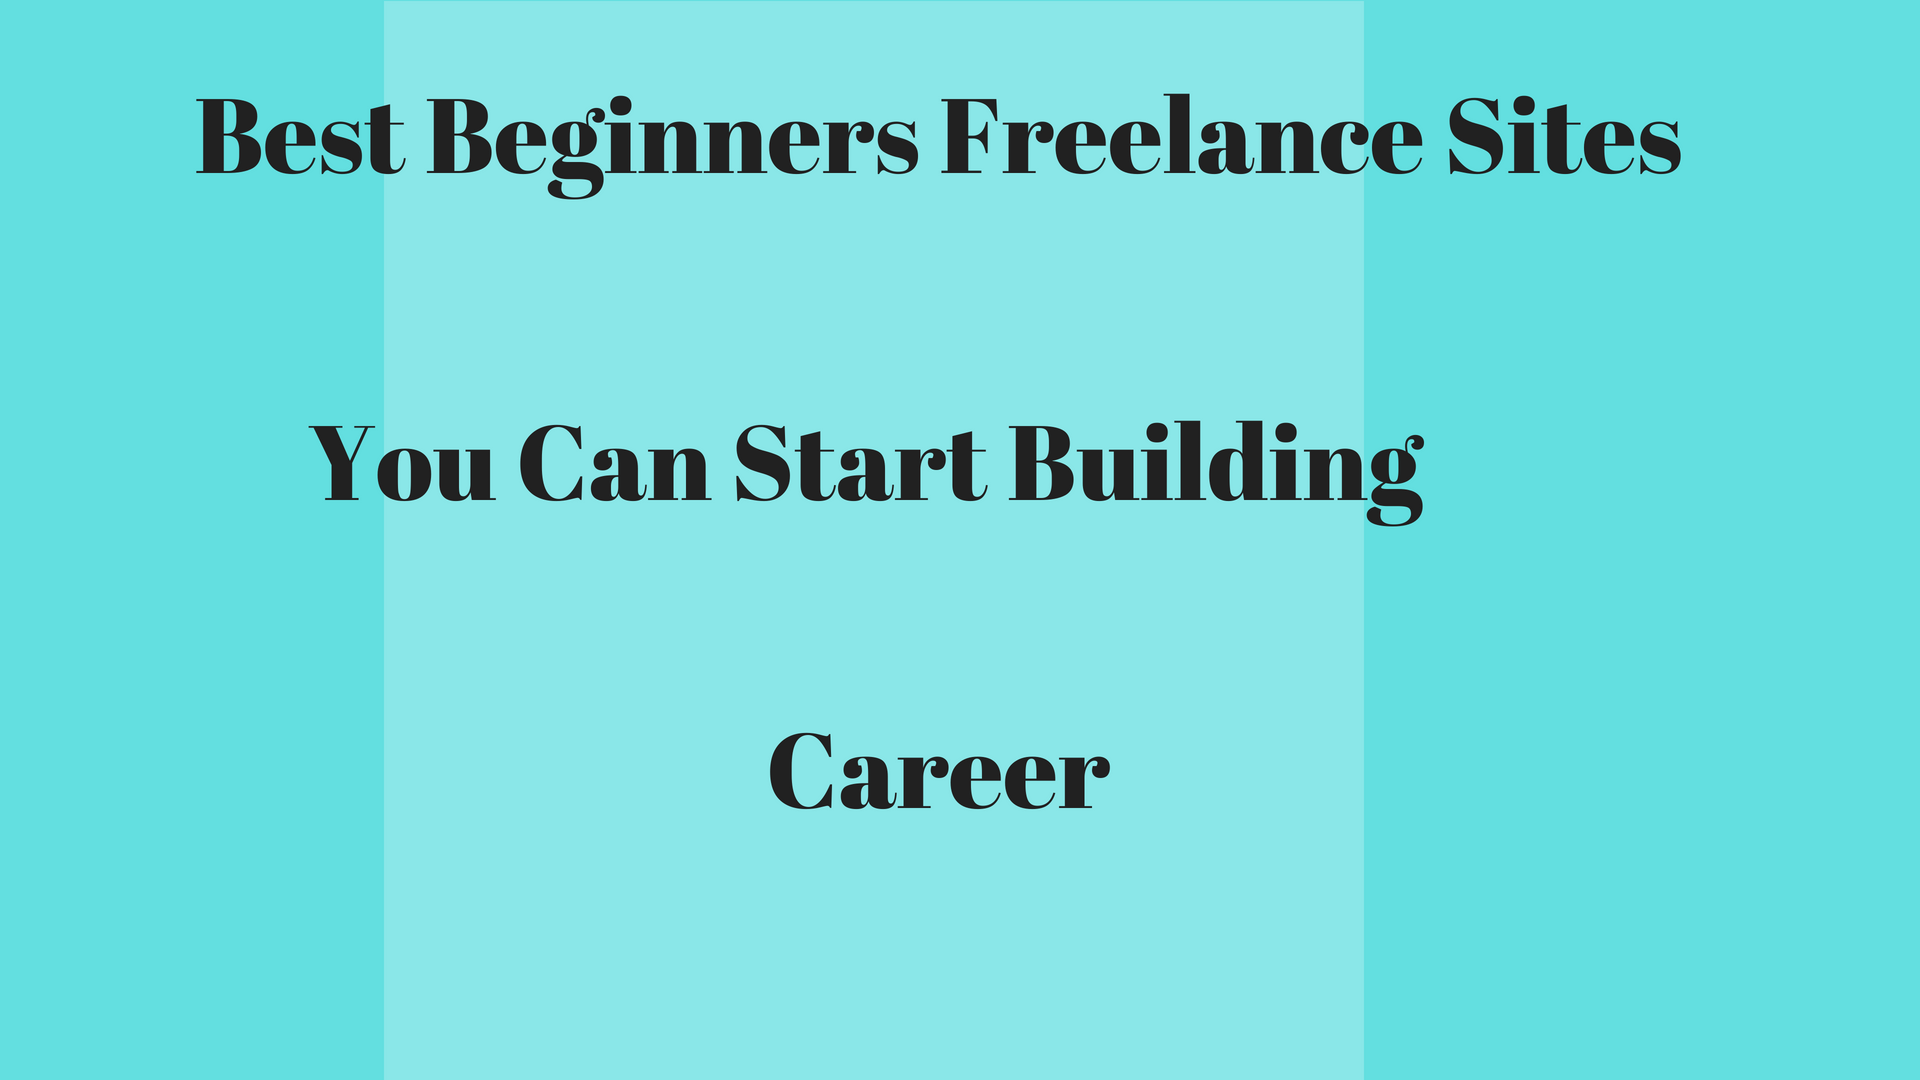 Beginners sites friendly to young writers